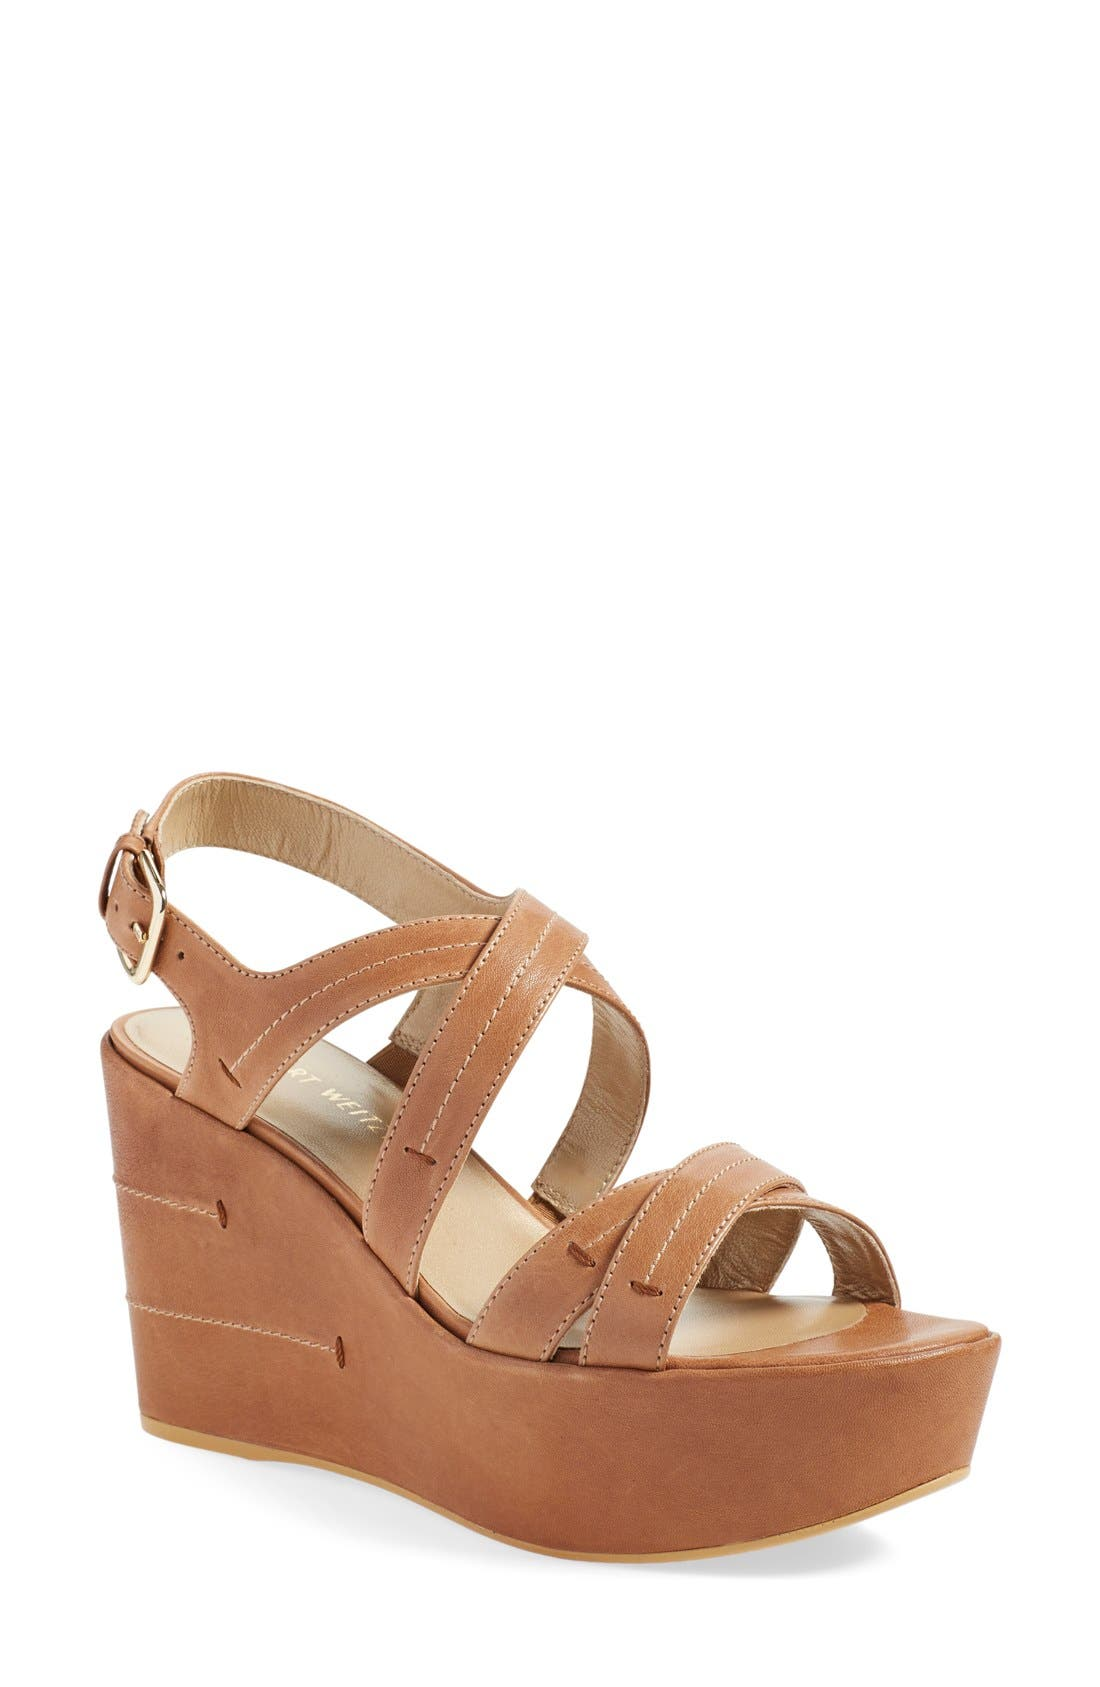 Alternate Image 1 Selected - Stuart Weitzman 'Doublexing' Wedge Sandal (Women)